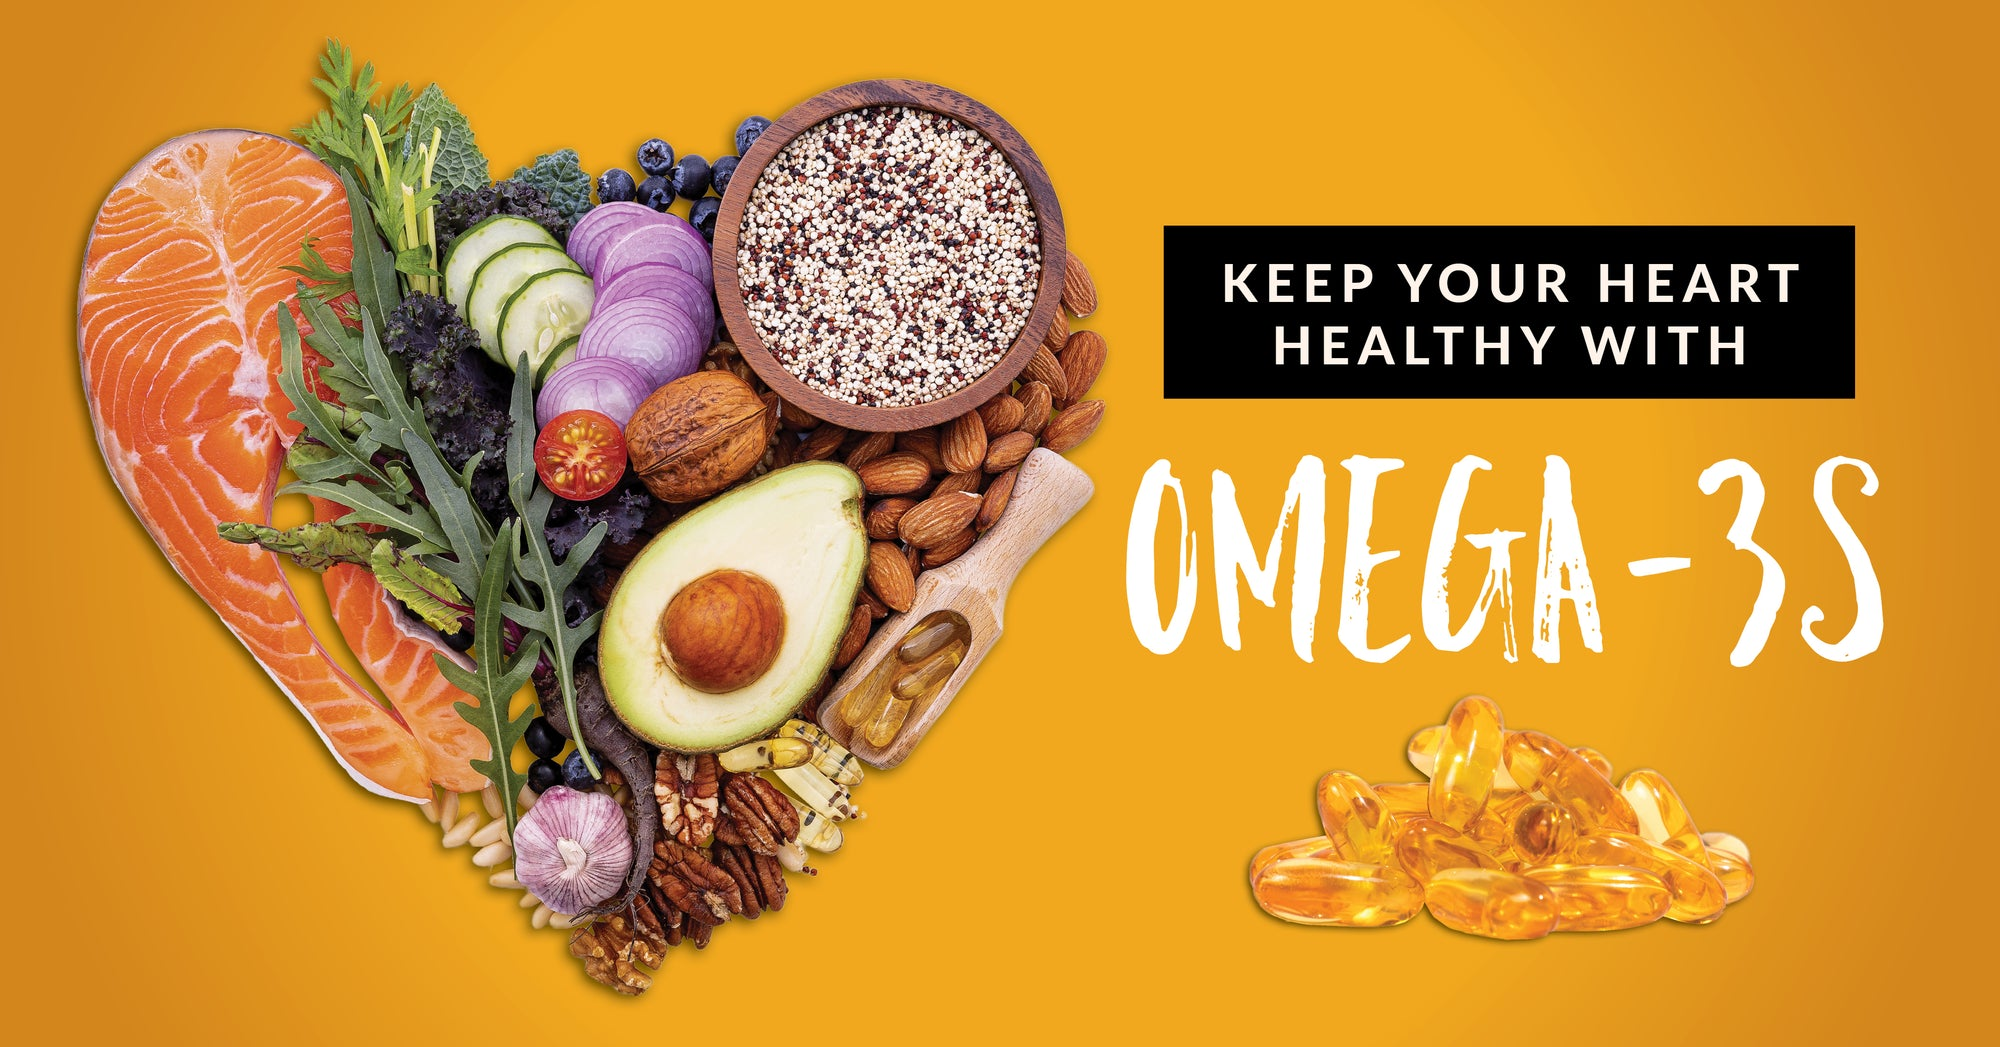 Keeping your heart healthy with omega-3s